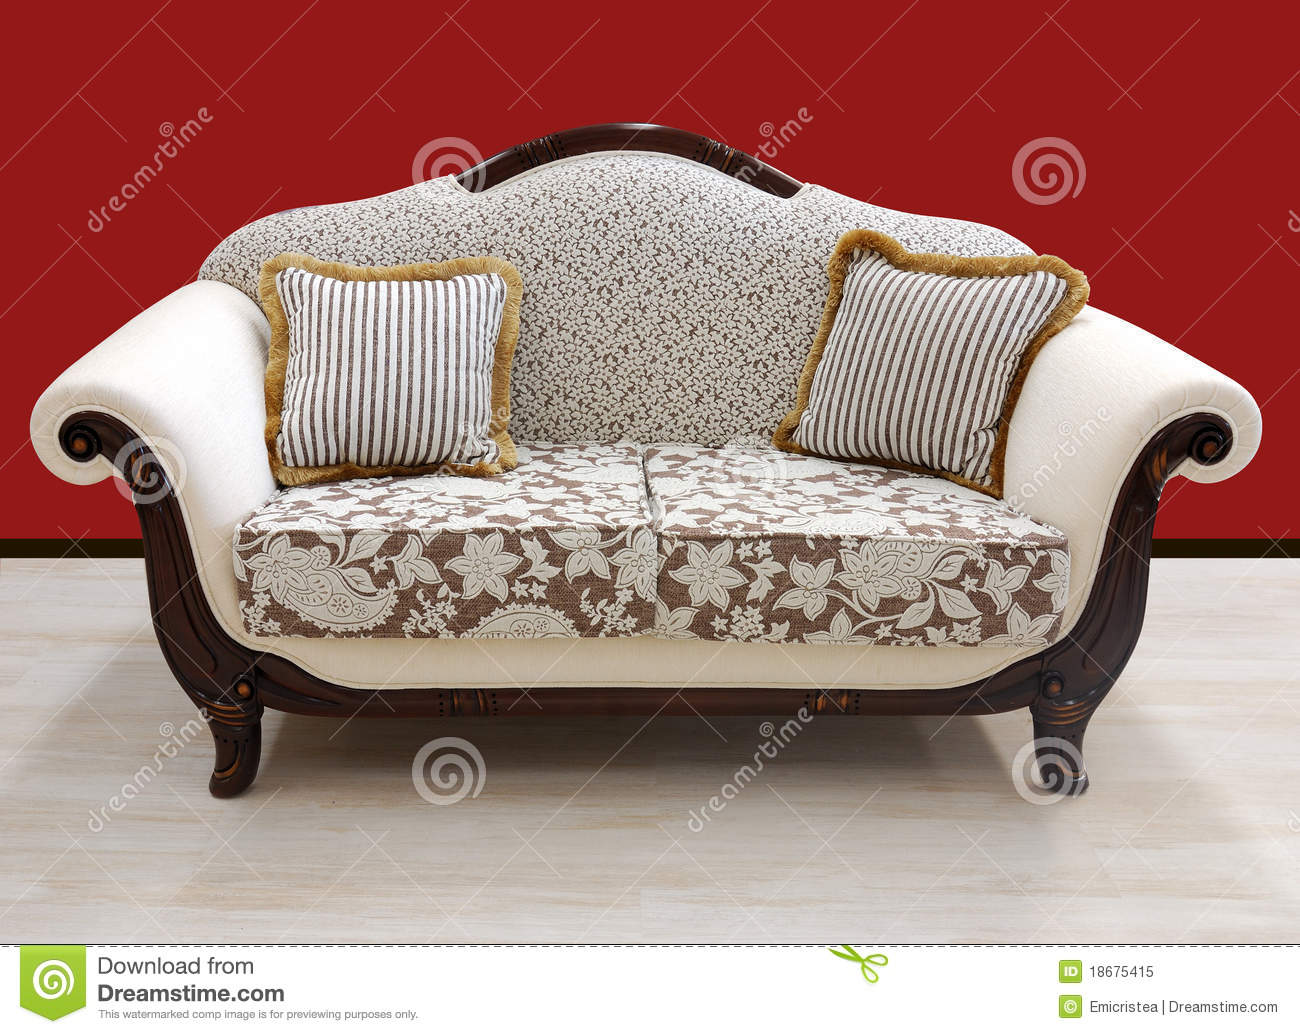 Vintage design style sofa royalty free stock photo image for Classic couch styles